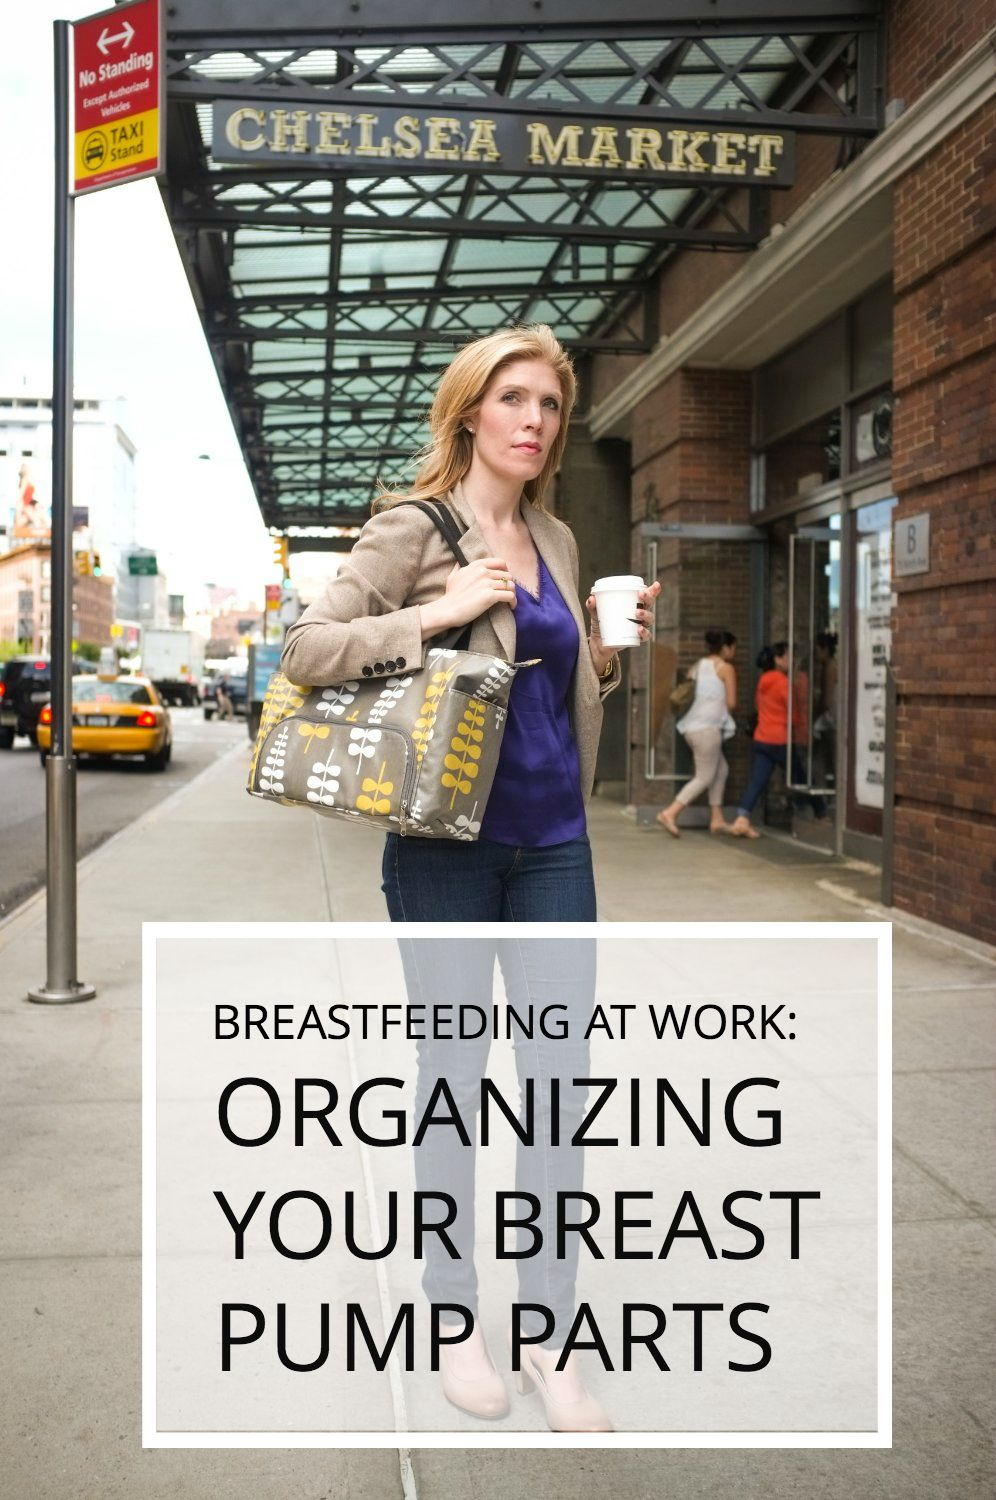 When you work and breastfeed, your breast pump becomes an essential tool that goes with you back and forth from the office. But what about all those parts?